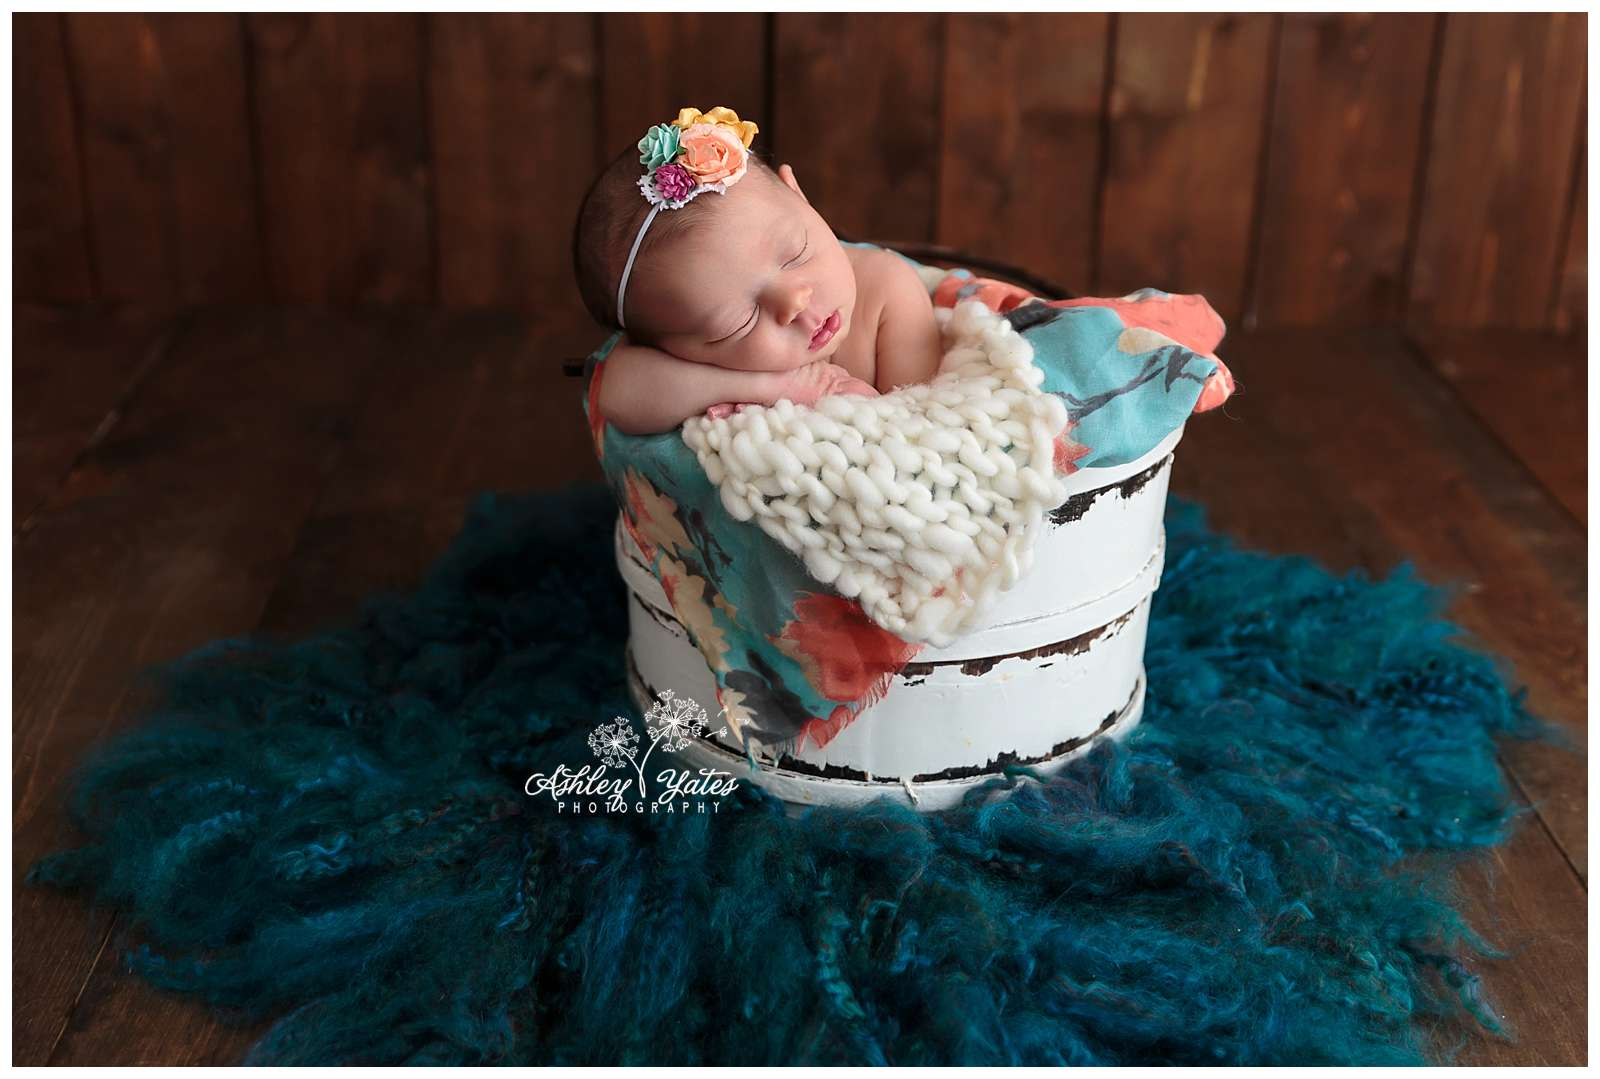 With a little trial and error, some help from Pinterest and YouTube, I found three easy and inexpensive newborn props that anyone can do on their own - even those who aren't crafty by nature!